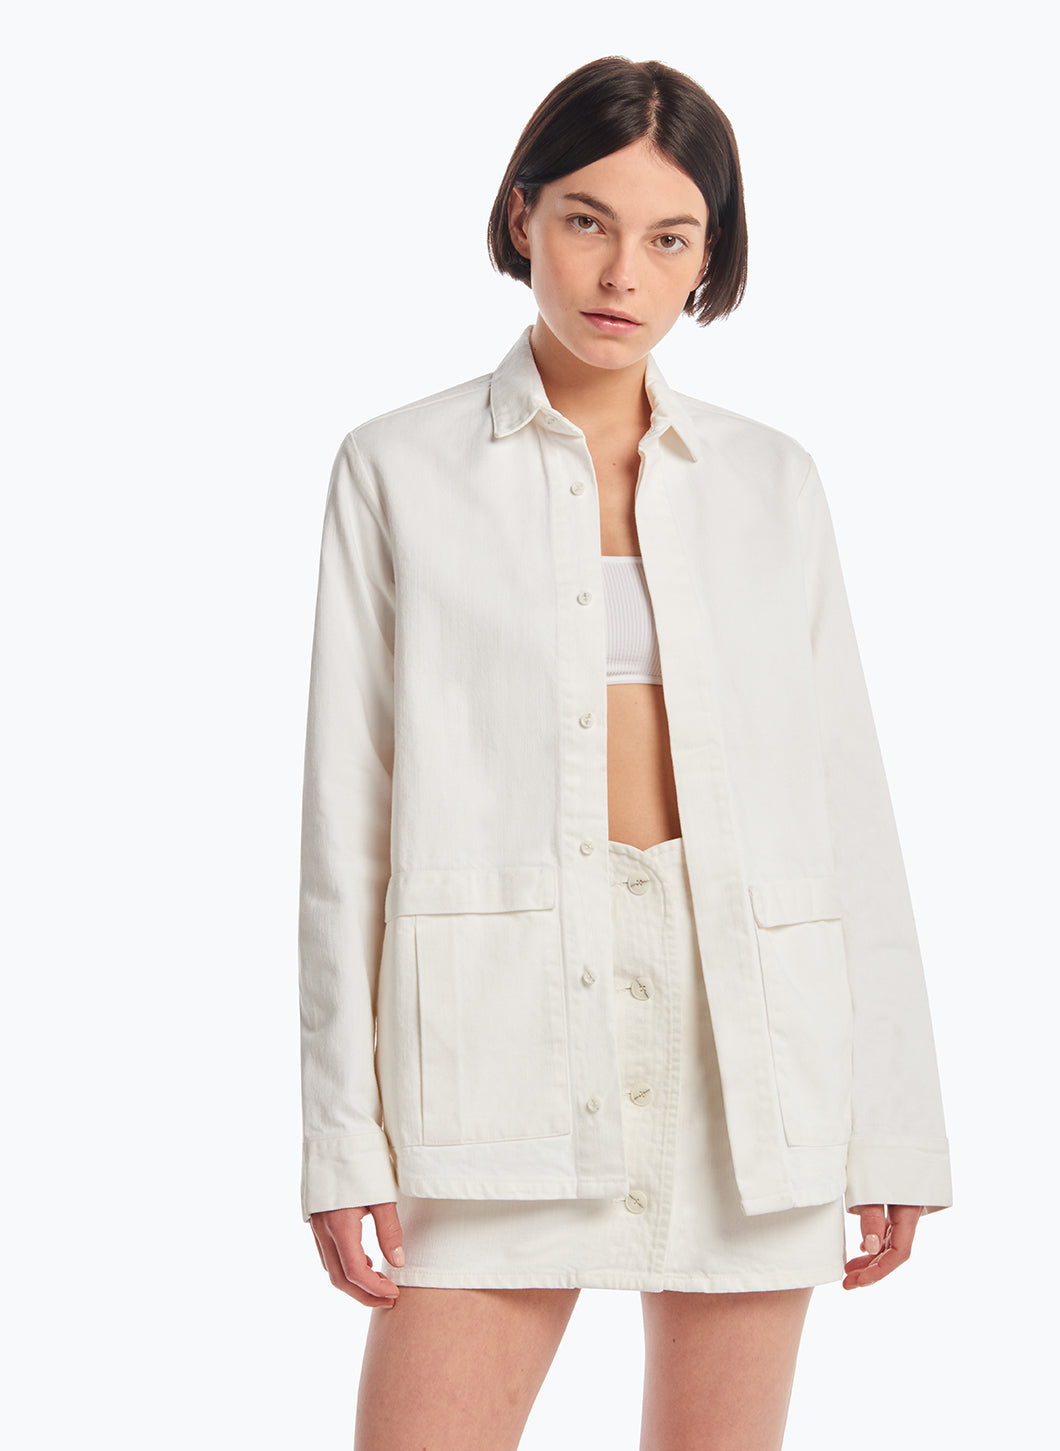 Jacket-Shirt with Flap Pockets in White Denim